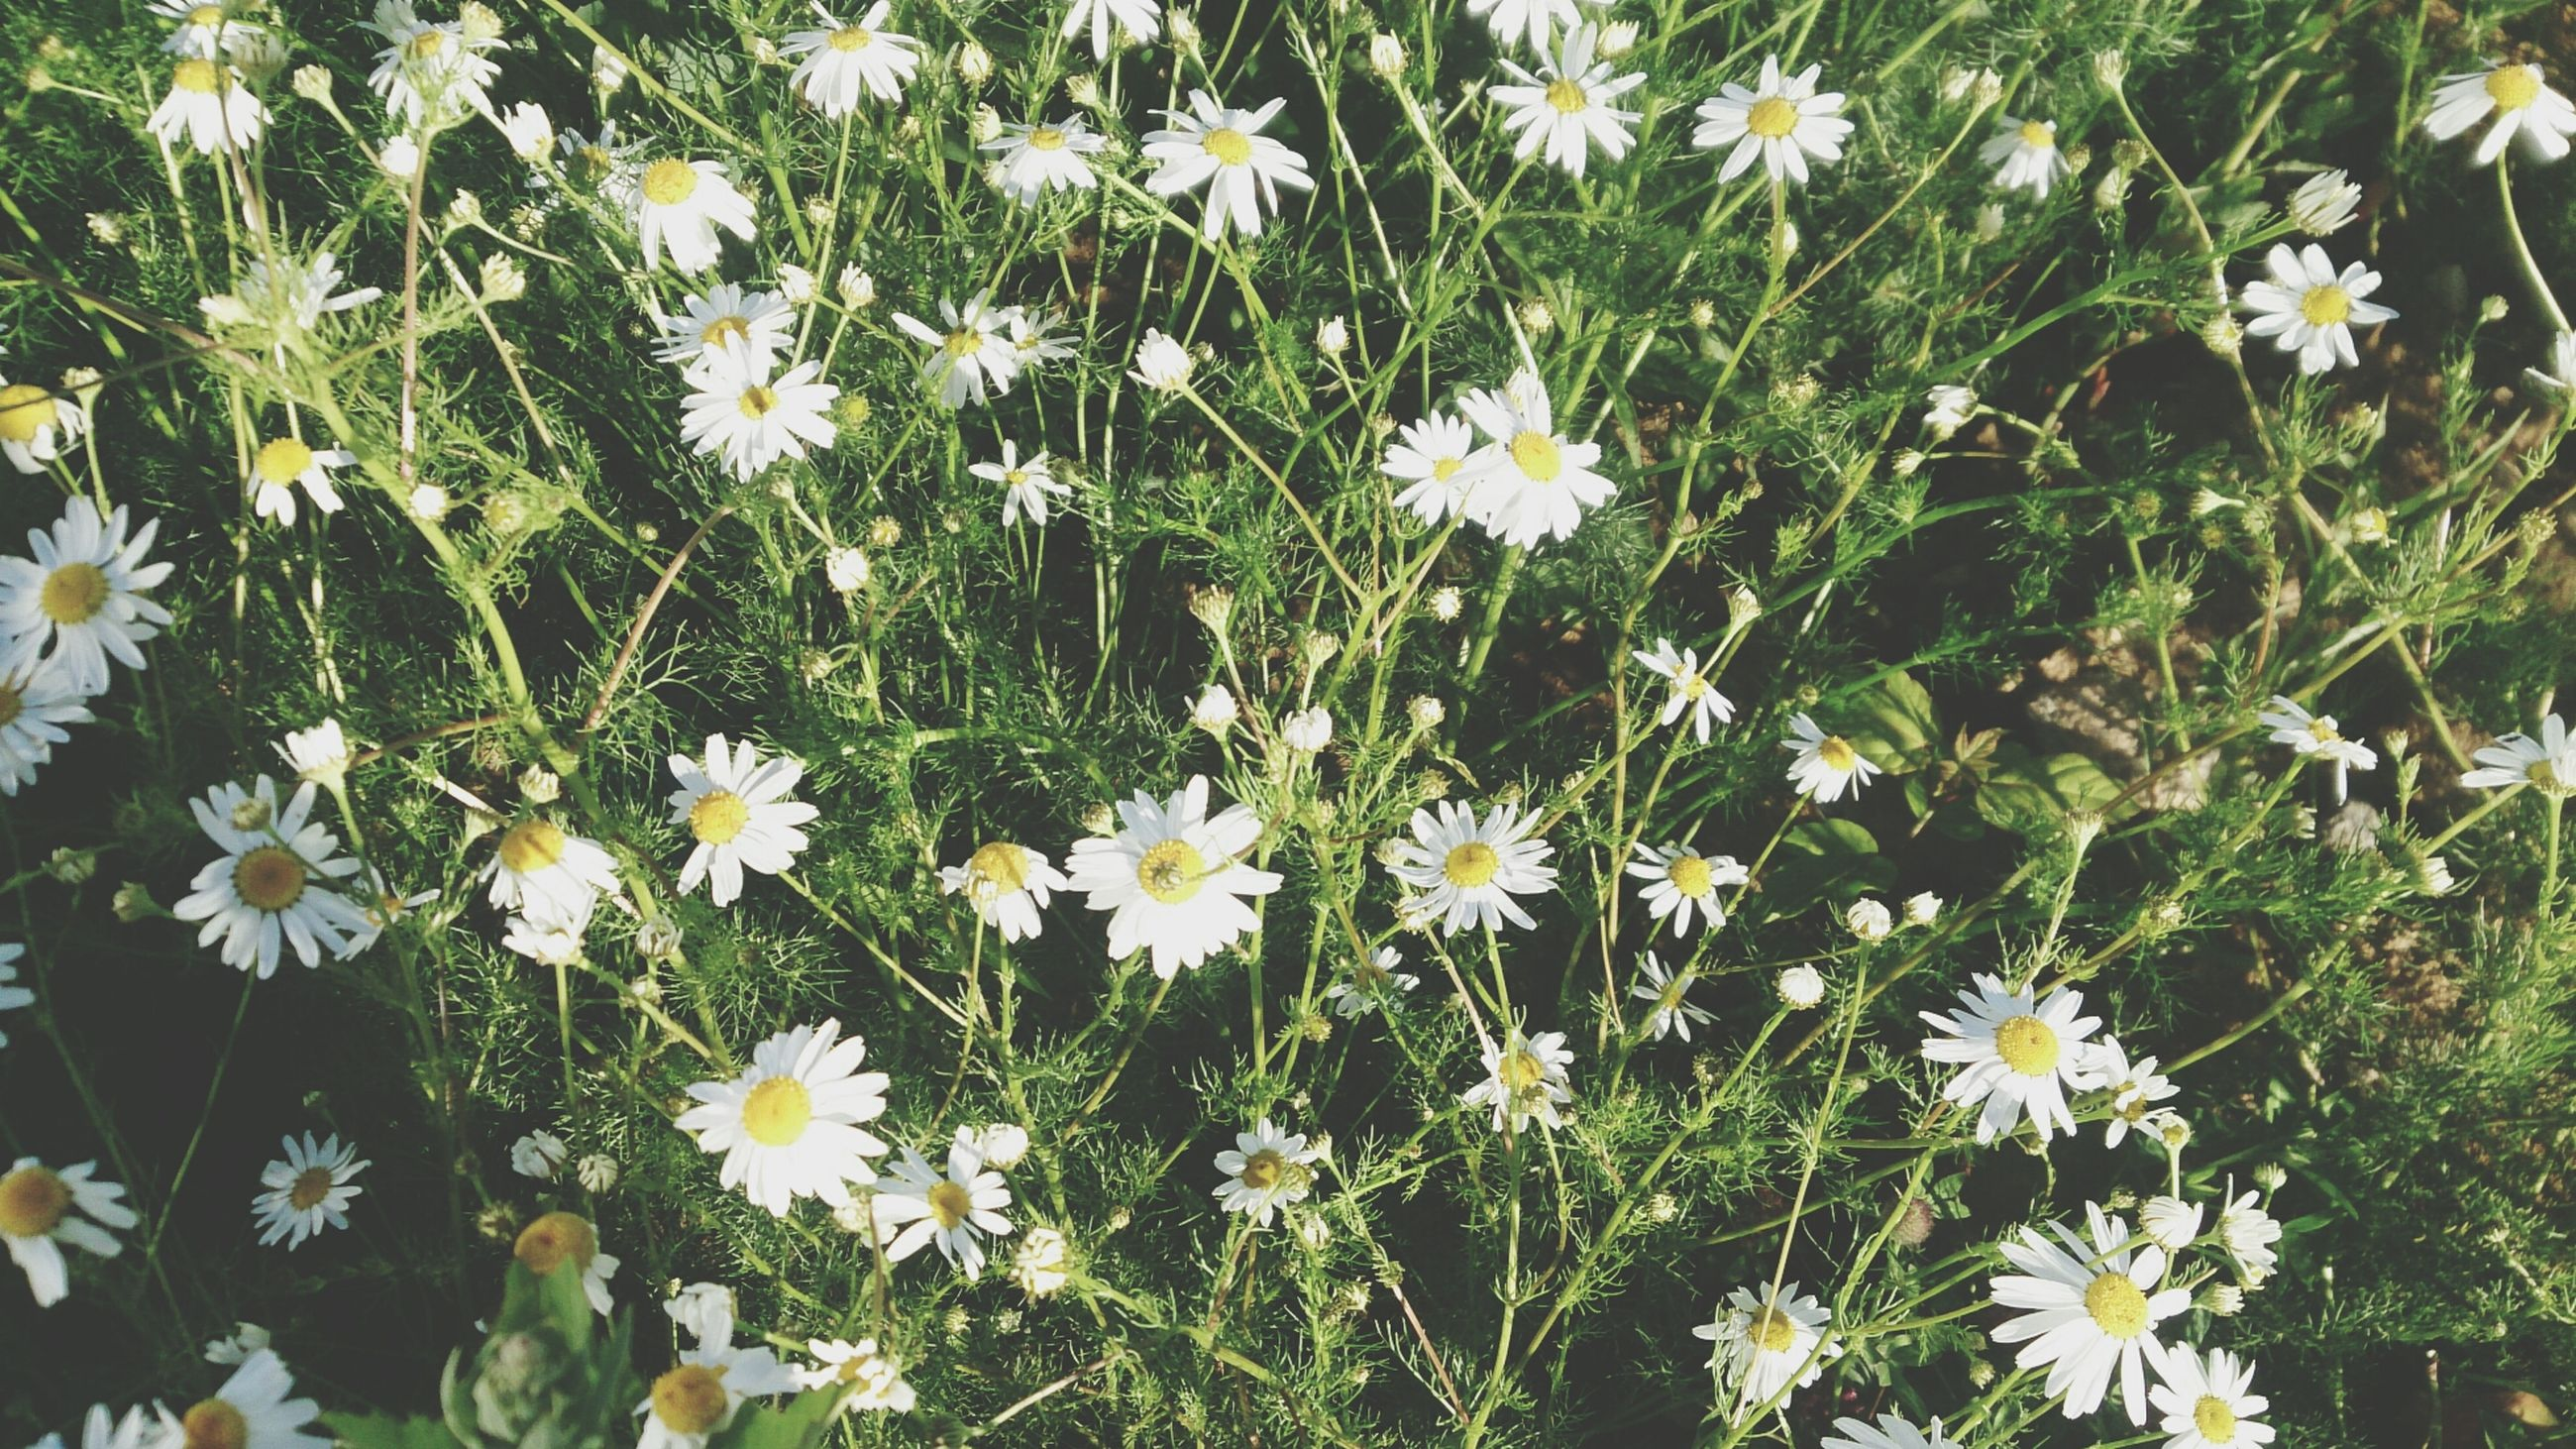 flower, freshness, growth, daisy, fragility, white color, petal, beauty in nature, plant, flower head, blooming, nature, high angle view, green color, field, leaf, in bloom, white, wildflower, day